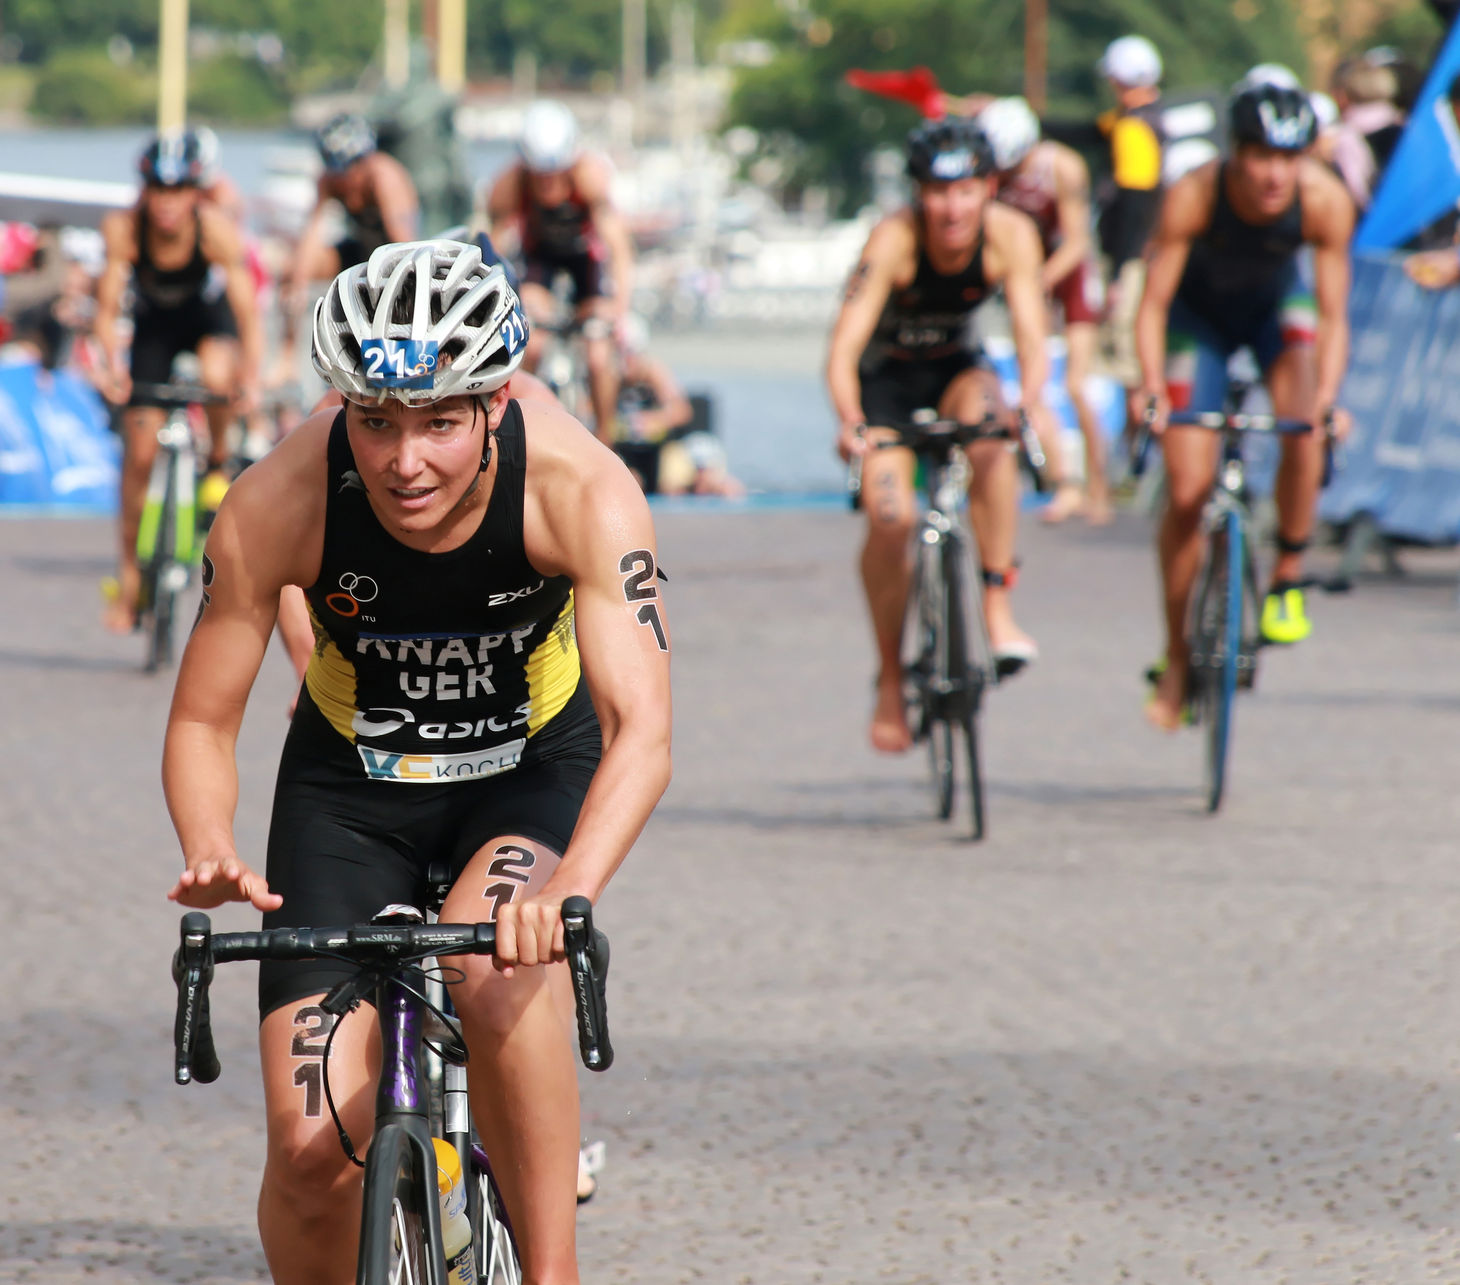 Triathletes cycling